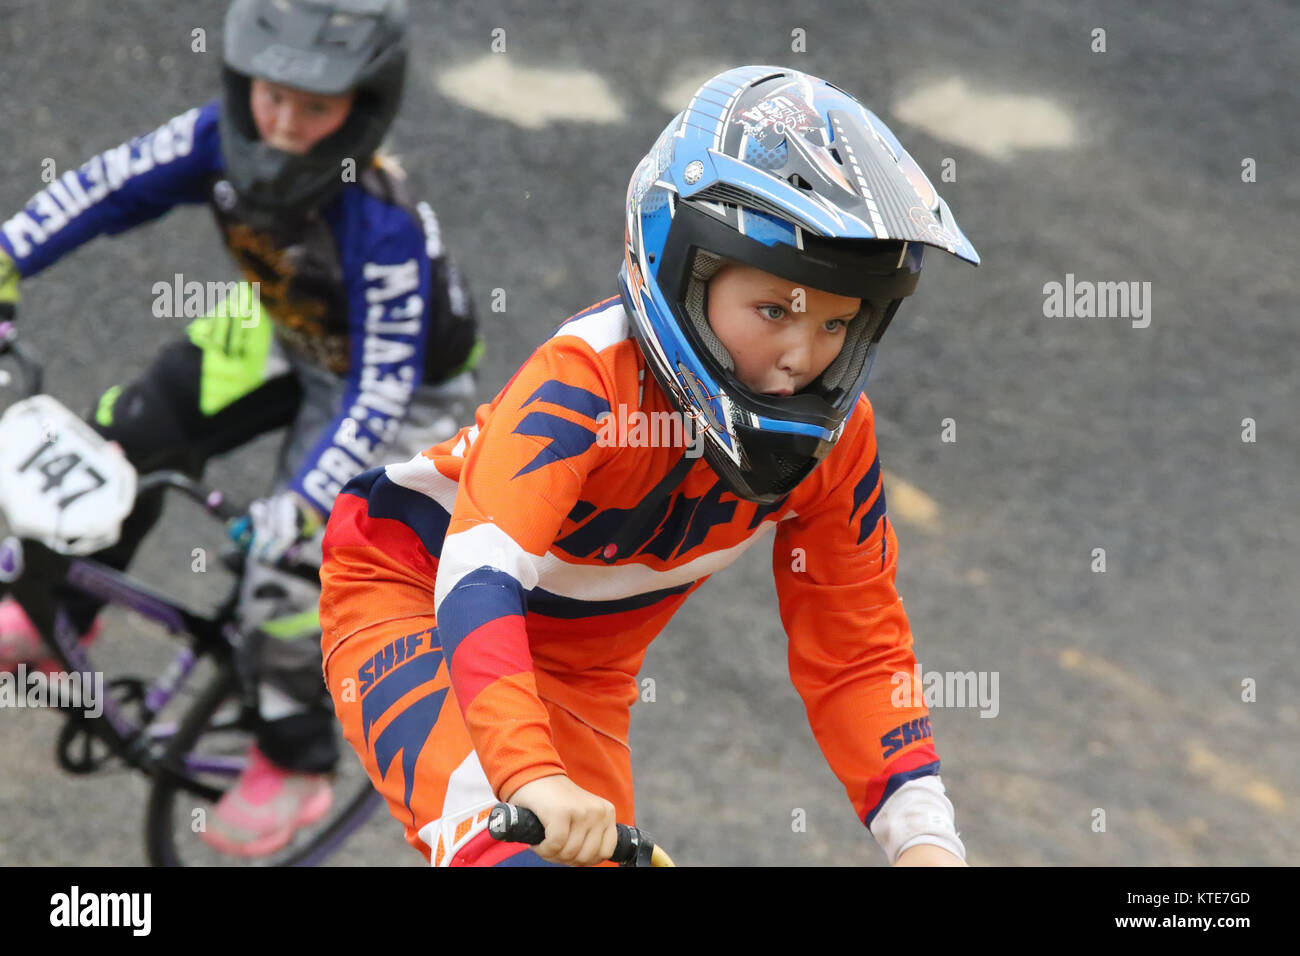 Preteen girl leads the boys in a race. Riders at Kettering BMX race night. BMX Track, Delco Park, Kettering, Dayton, - Stock Image